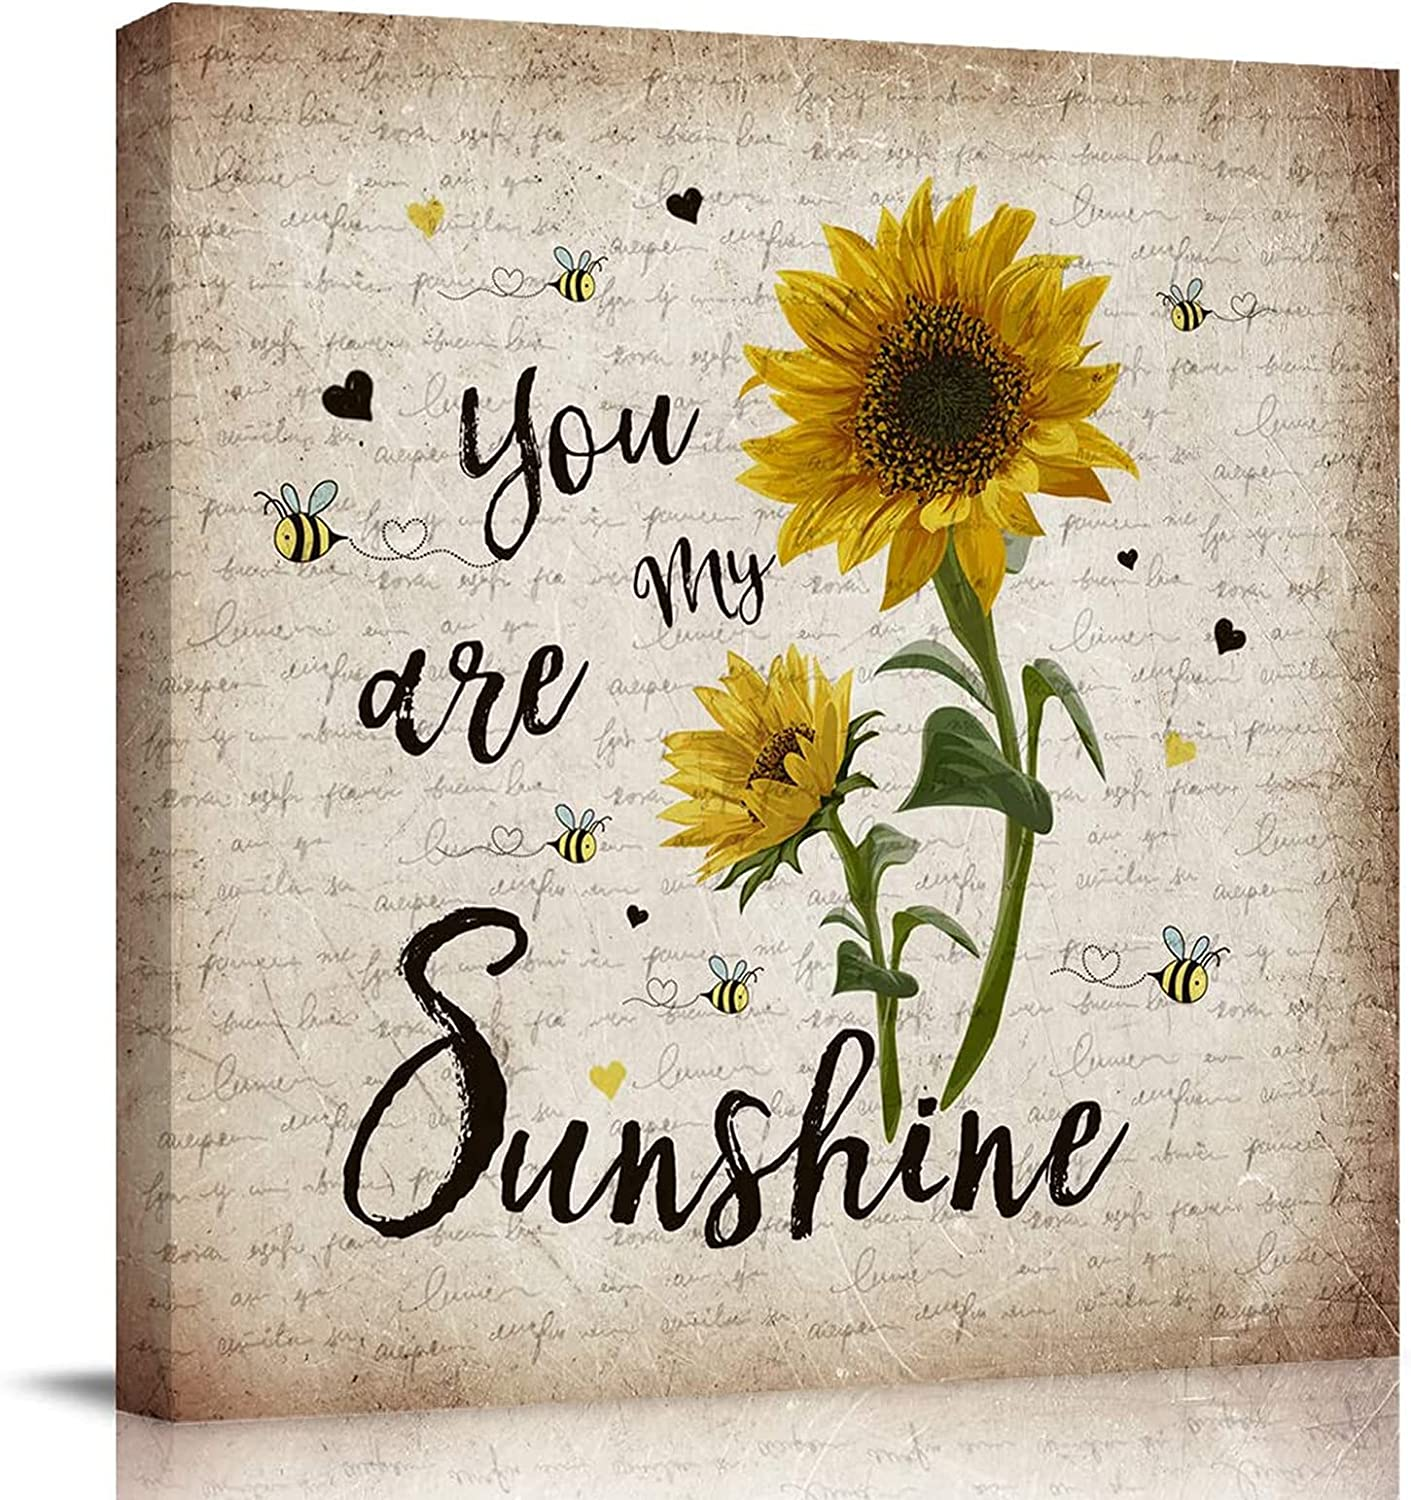 ZEREAA Sunflower Canvas Wall Art Decor - You're My Sunshine Yellow Framed Wall Art for Kitchen, Living Room, Bedroom, Bathroom, Bee and Sunflower Painting Wall Artwork Home Decor 14